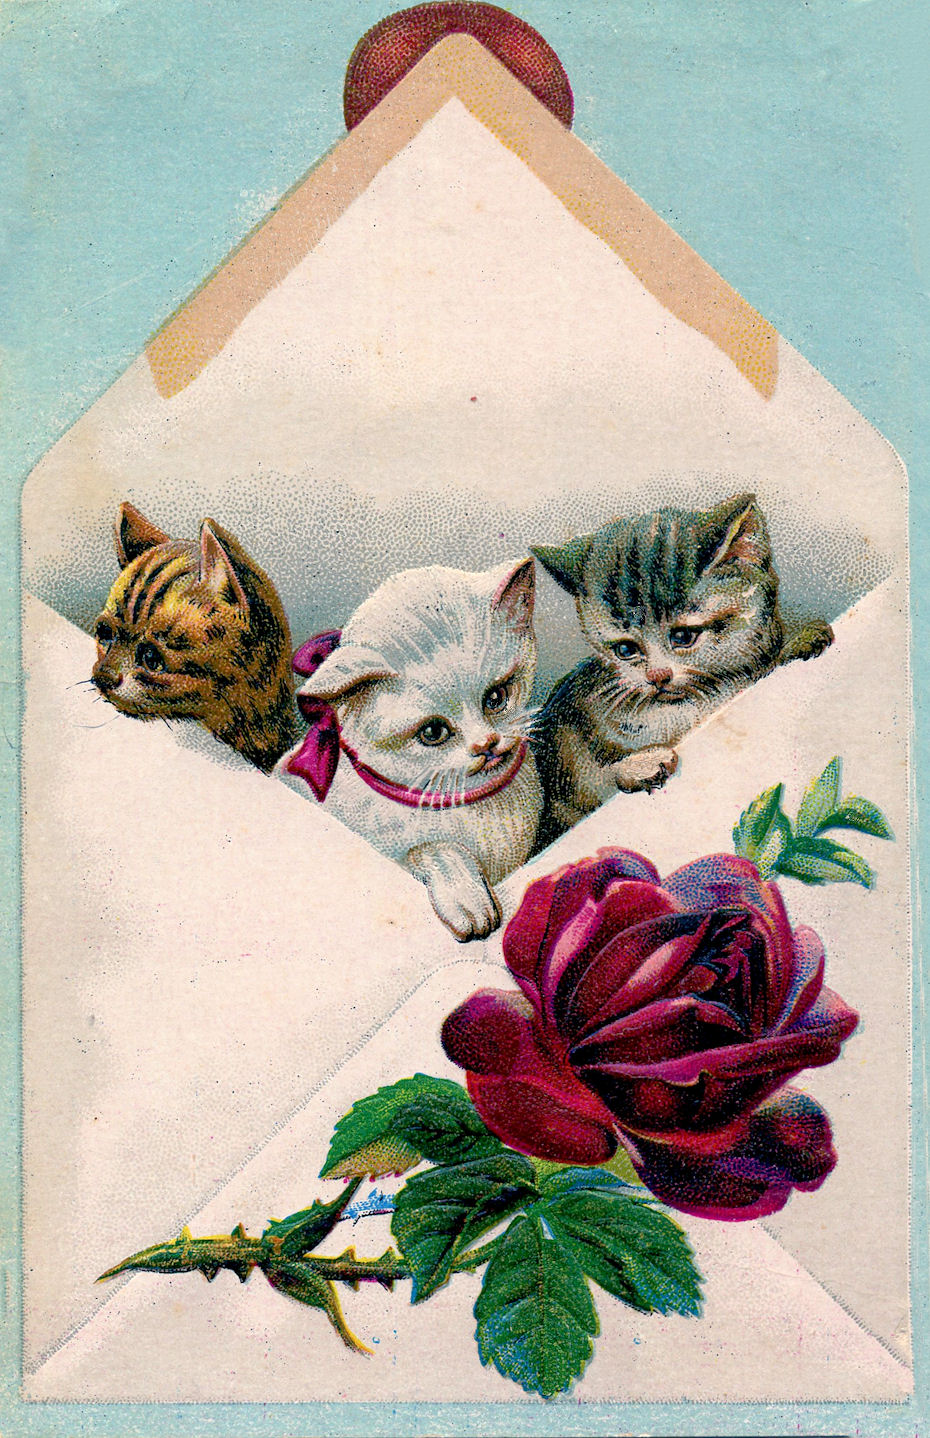 Vintage Image - Cats in Envelope - The Graphics Fairy